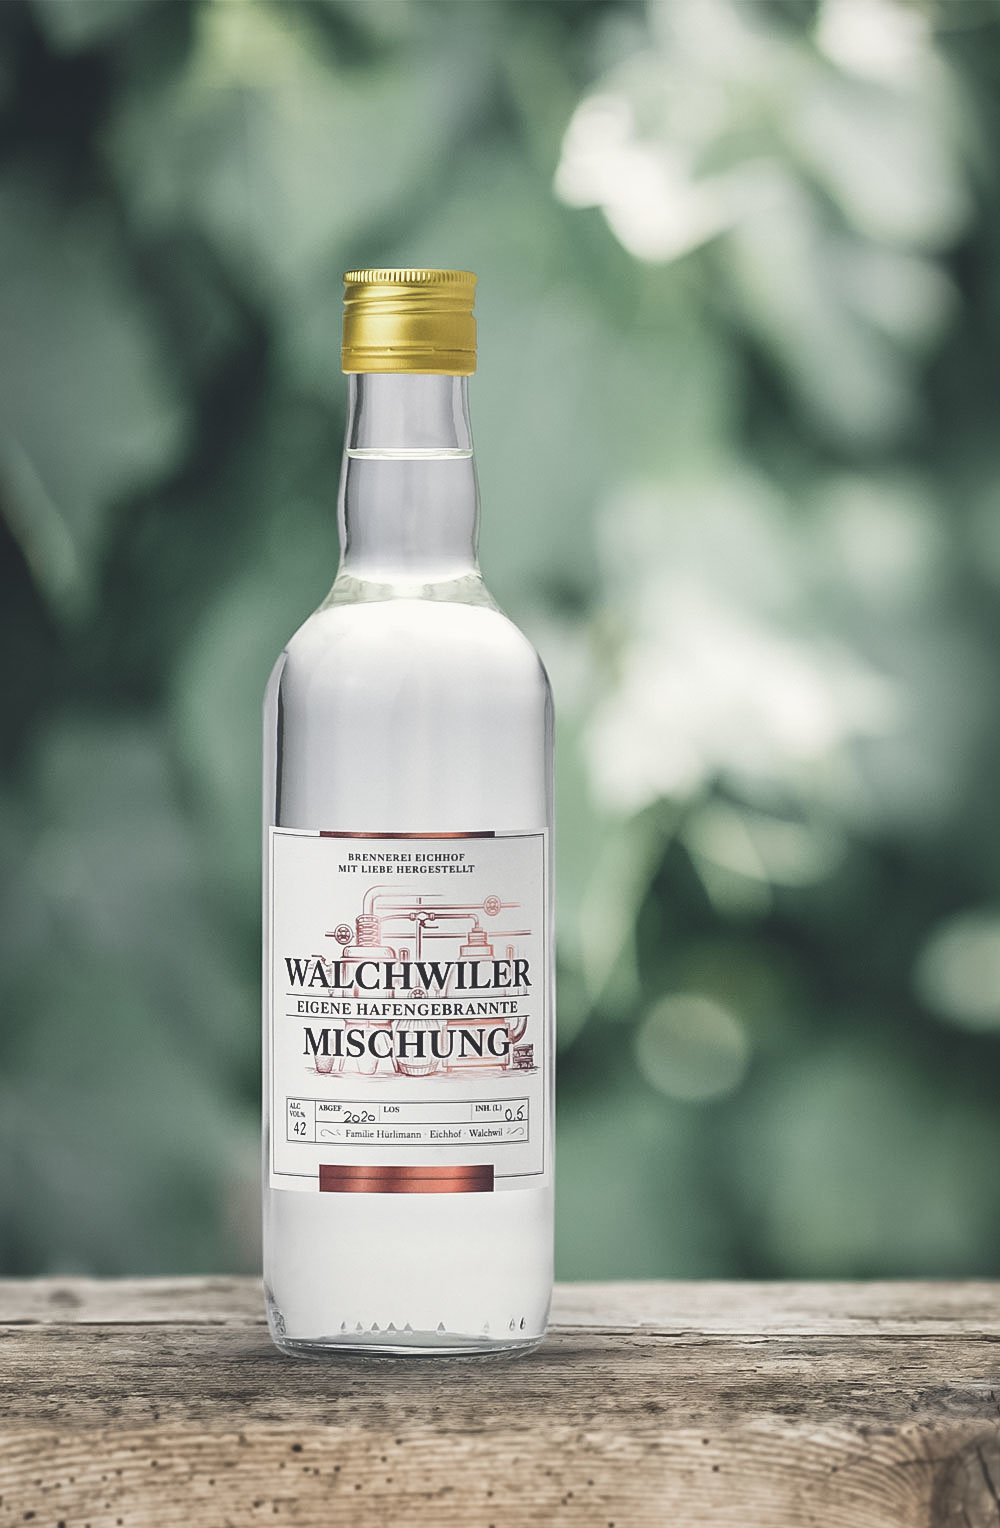 Walchwiler Mischung 50cl-1